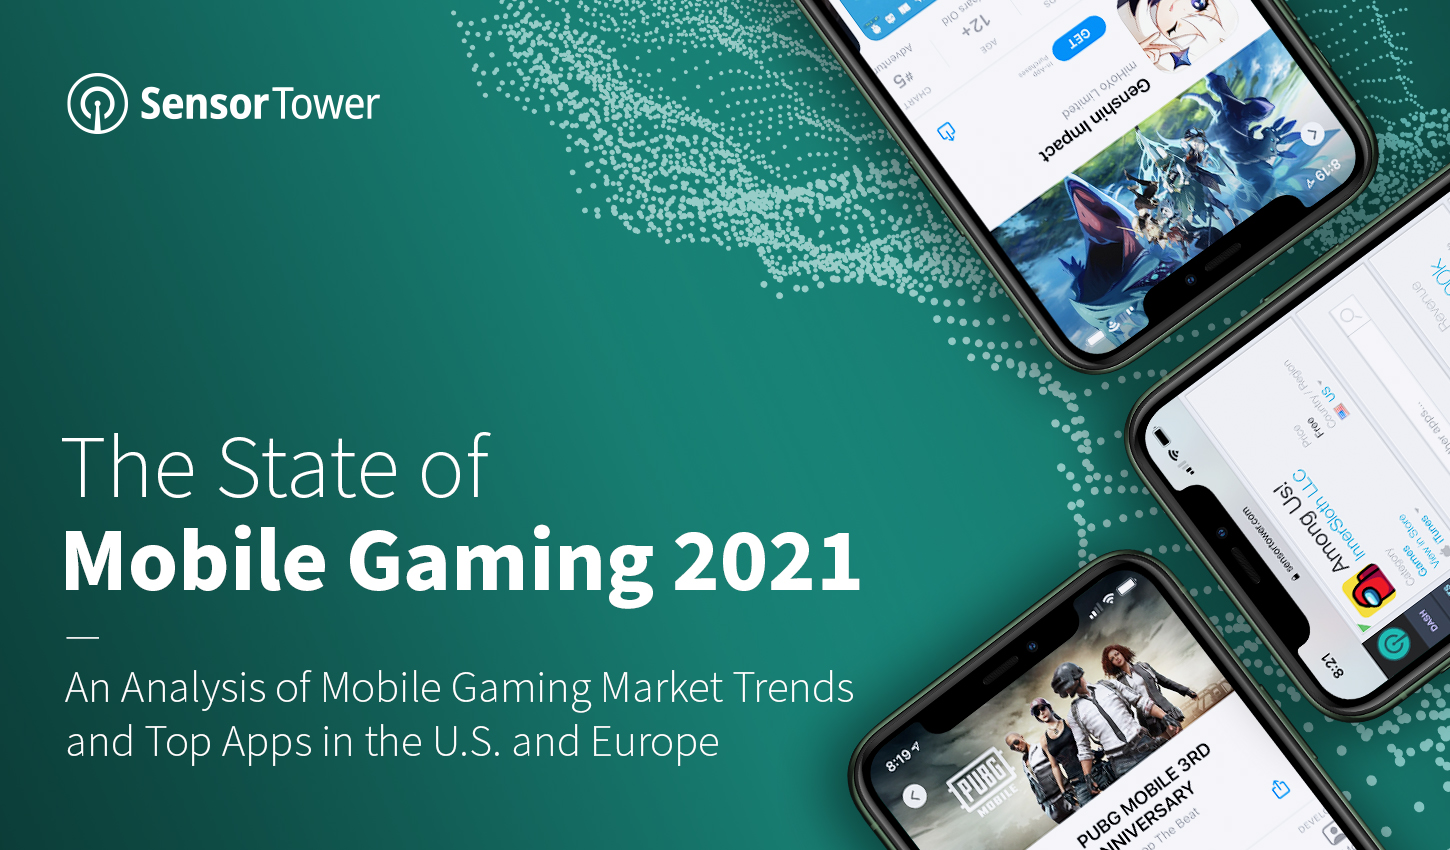 U.S. Share of Consumer Spending in Games Grows to Record 28% | Tech News